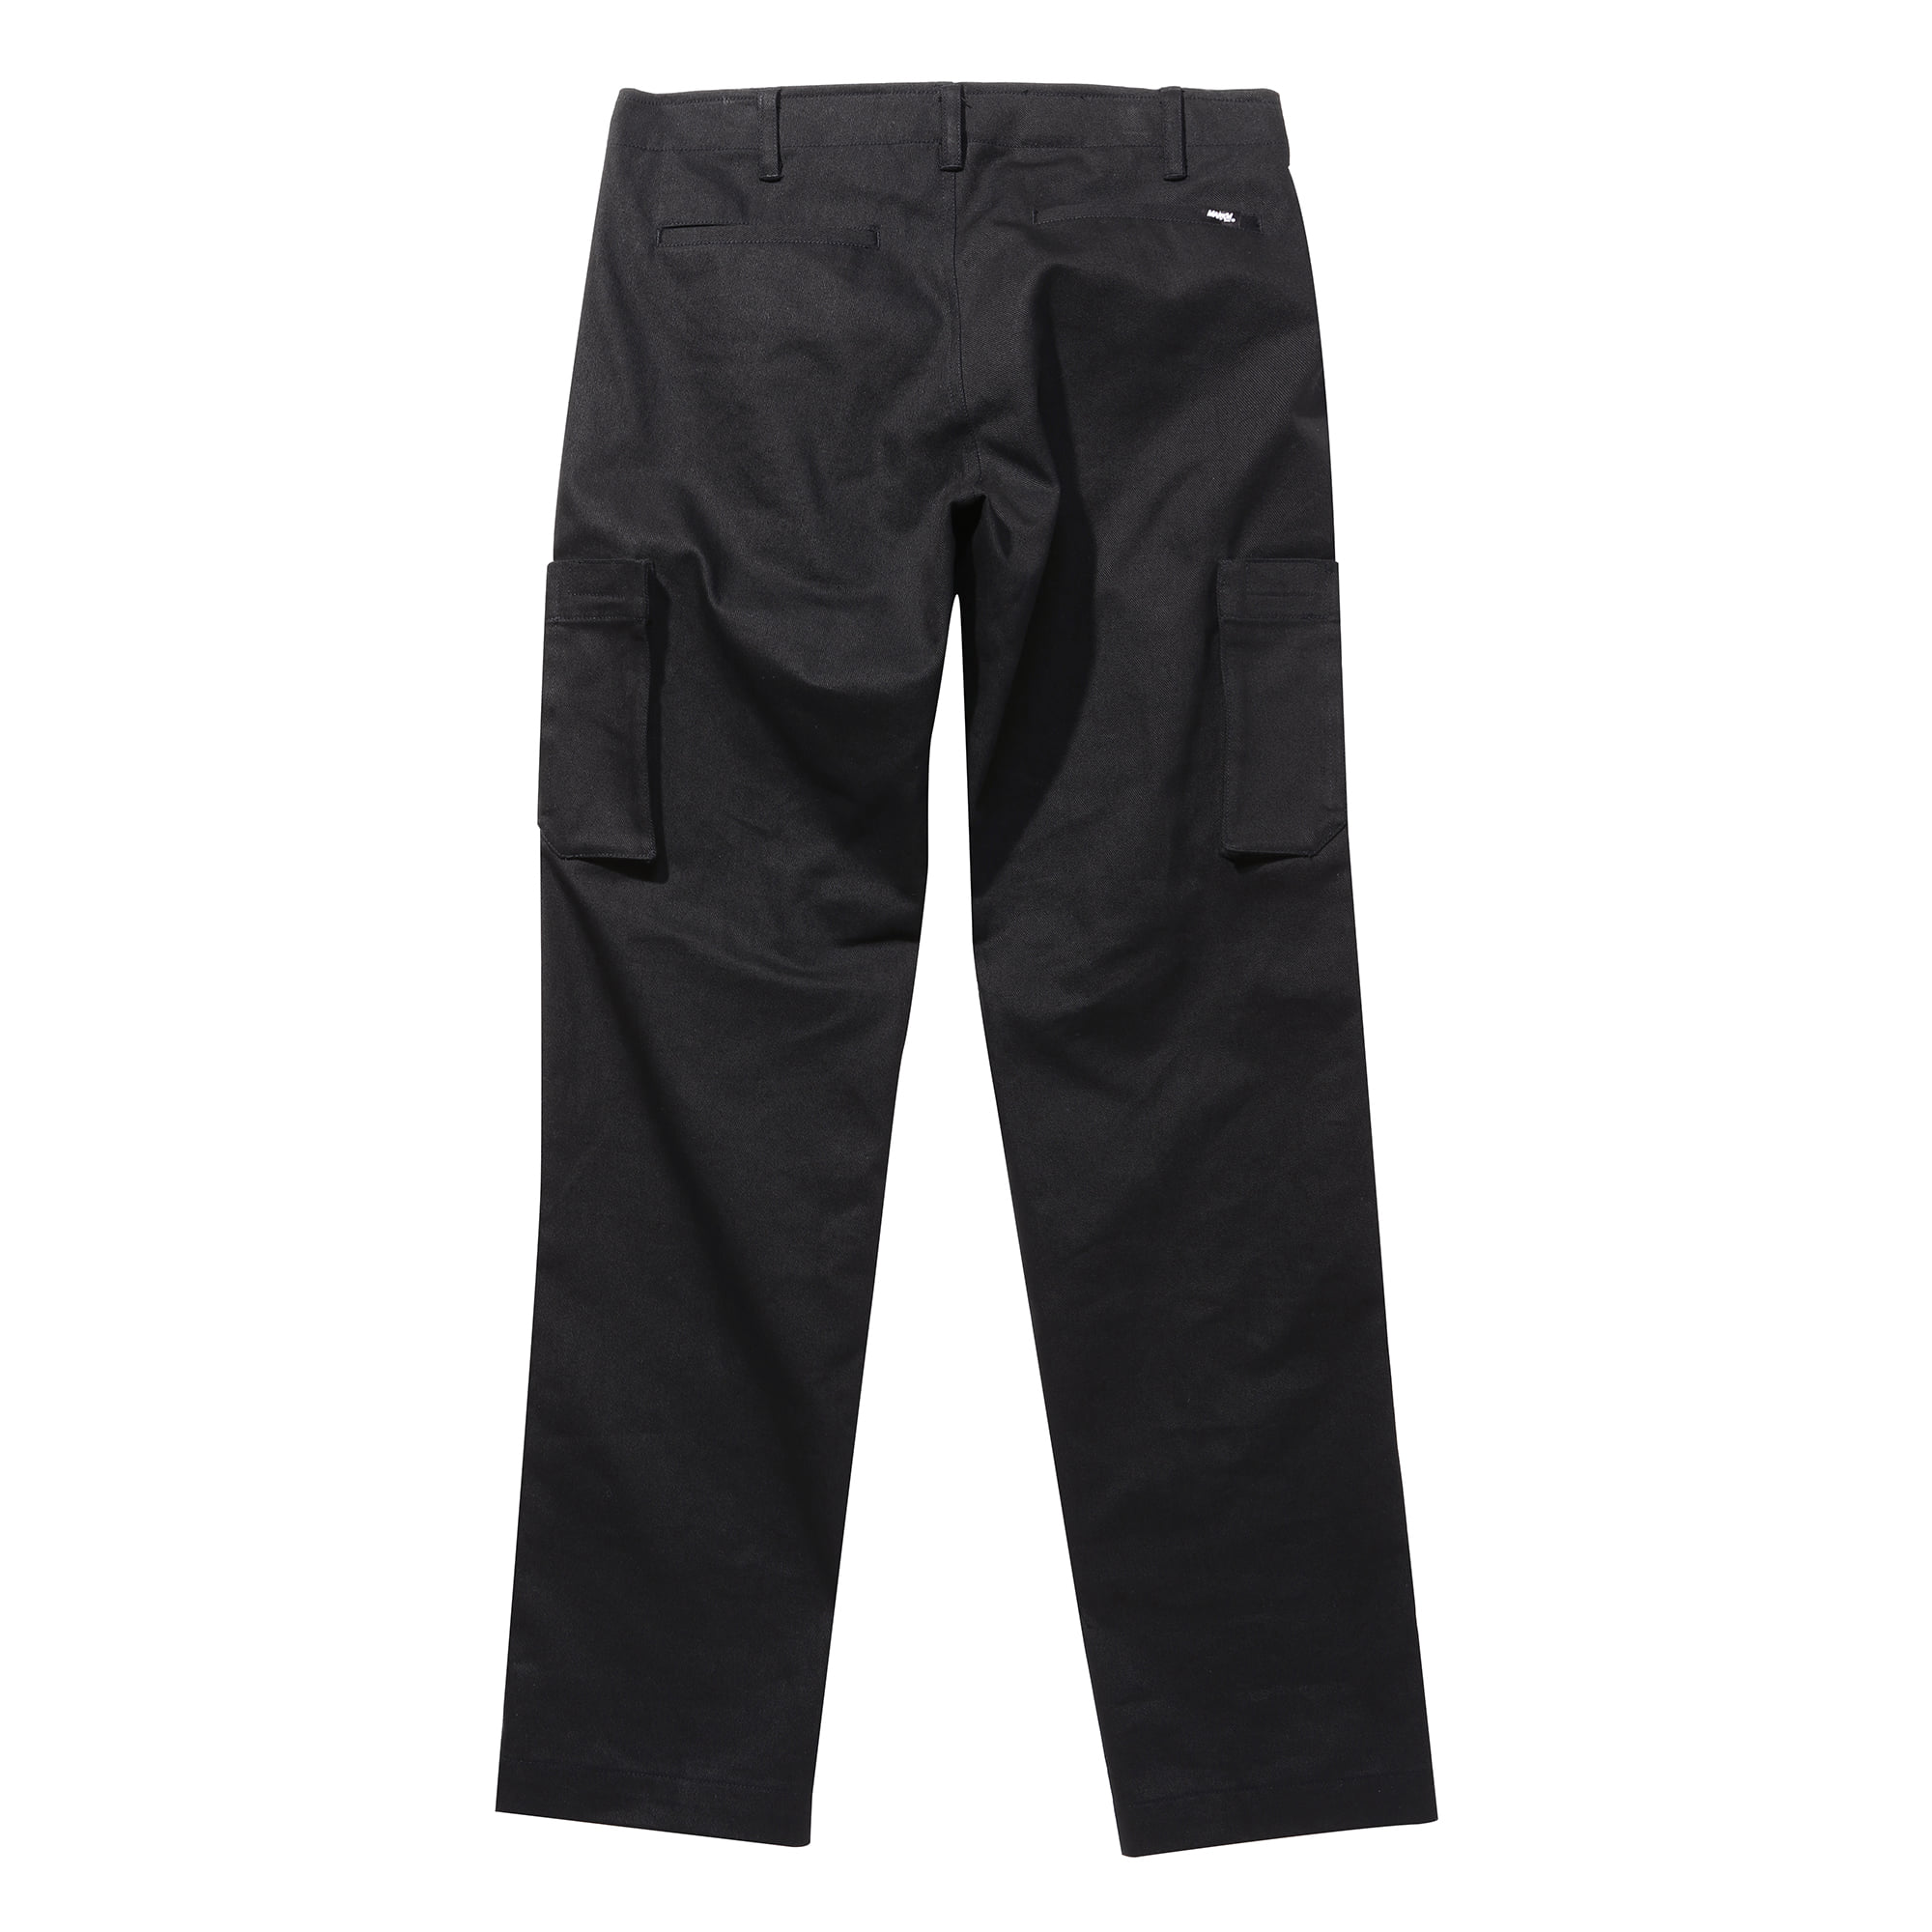 19FW MM pocket cargo pants MYFAX4512